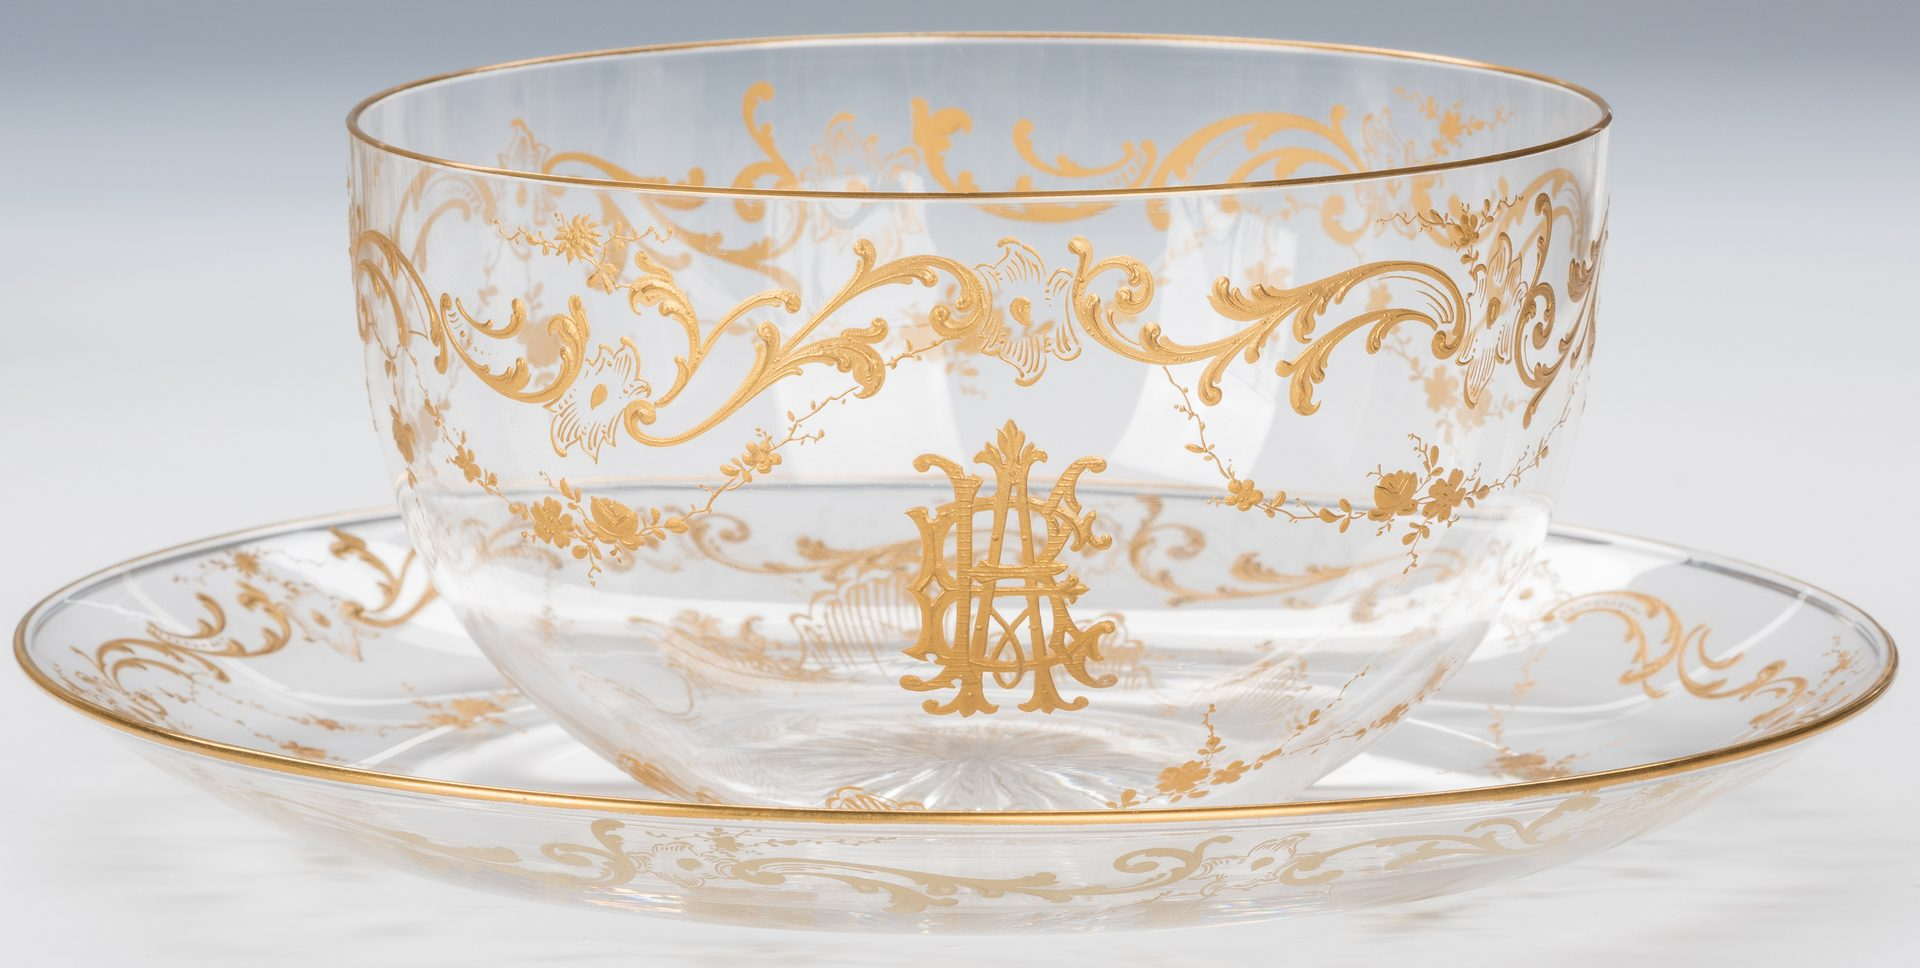 Lot 323: Baccarat Gilded Crystal Bowls & Tazzas